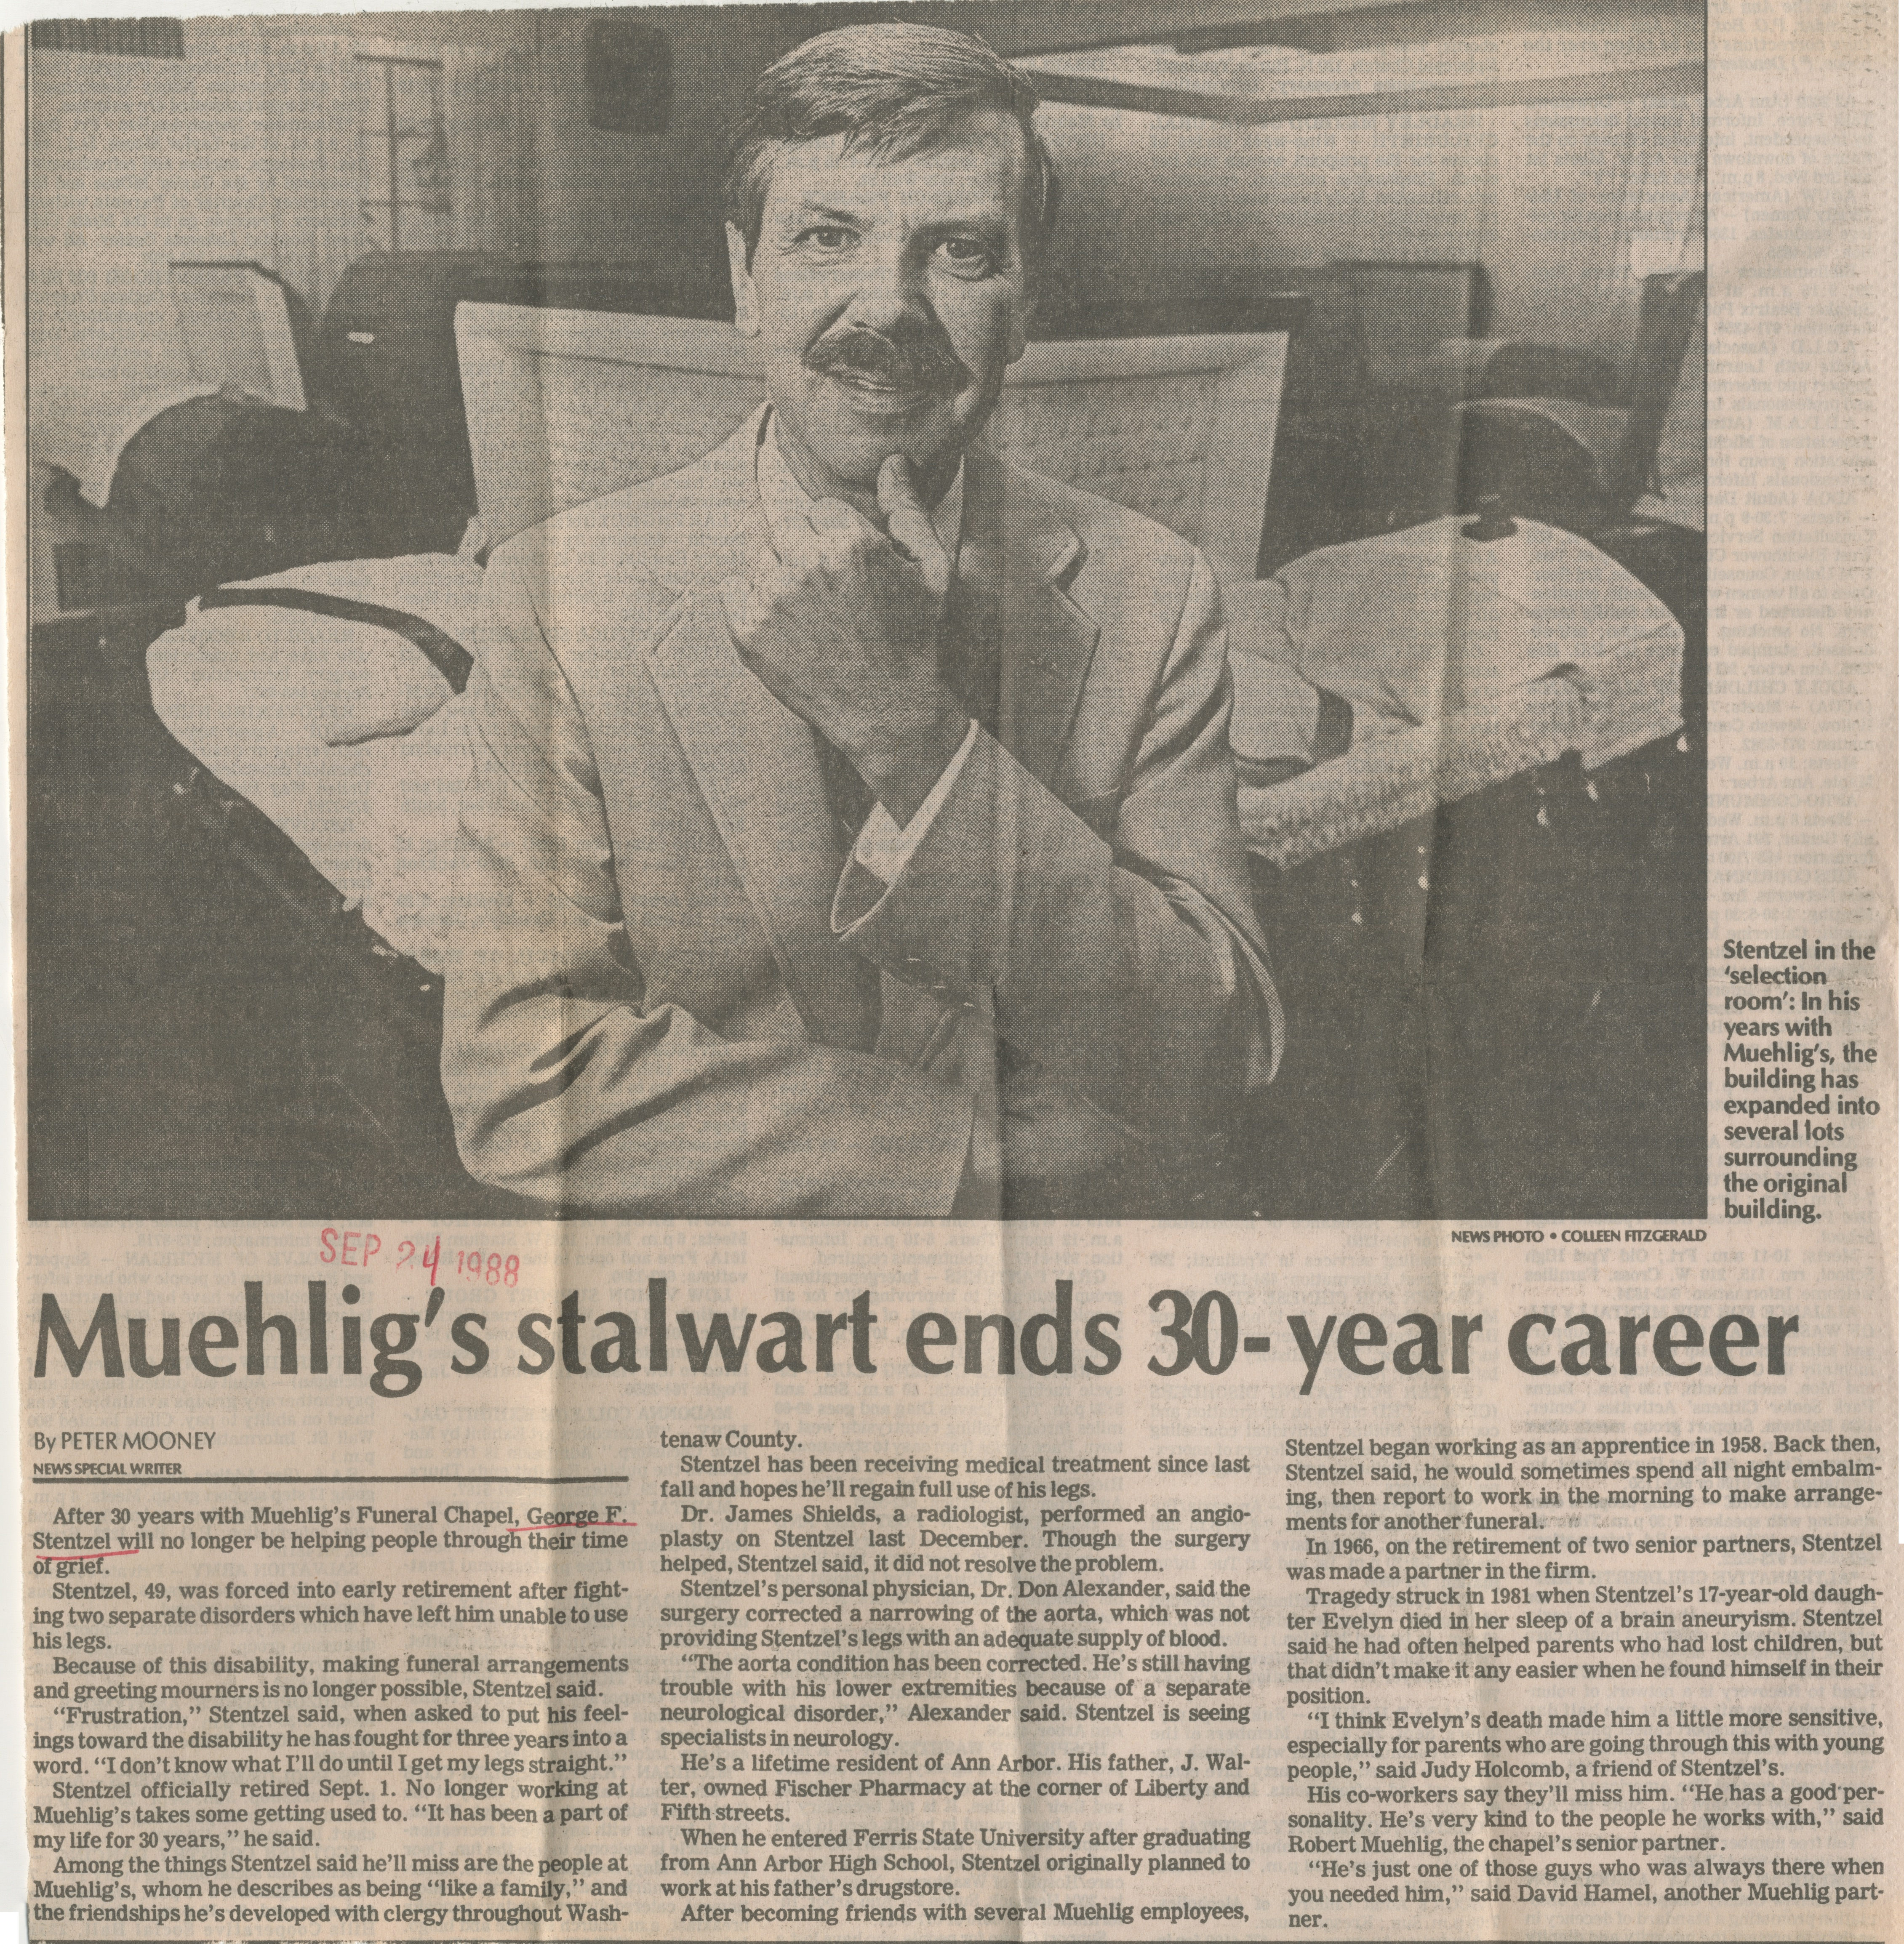 Muehlig's stalwart ends 30-year career image